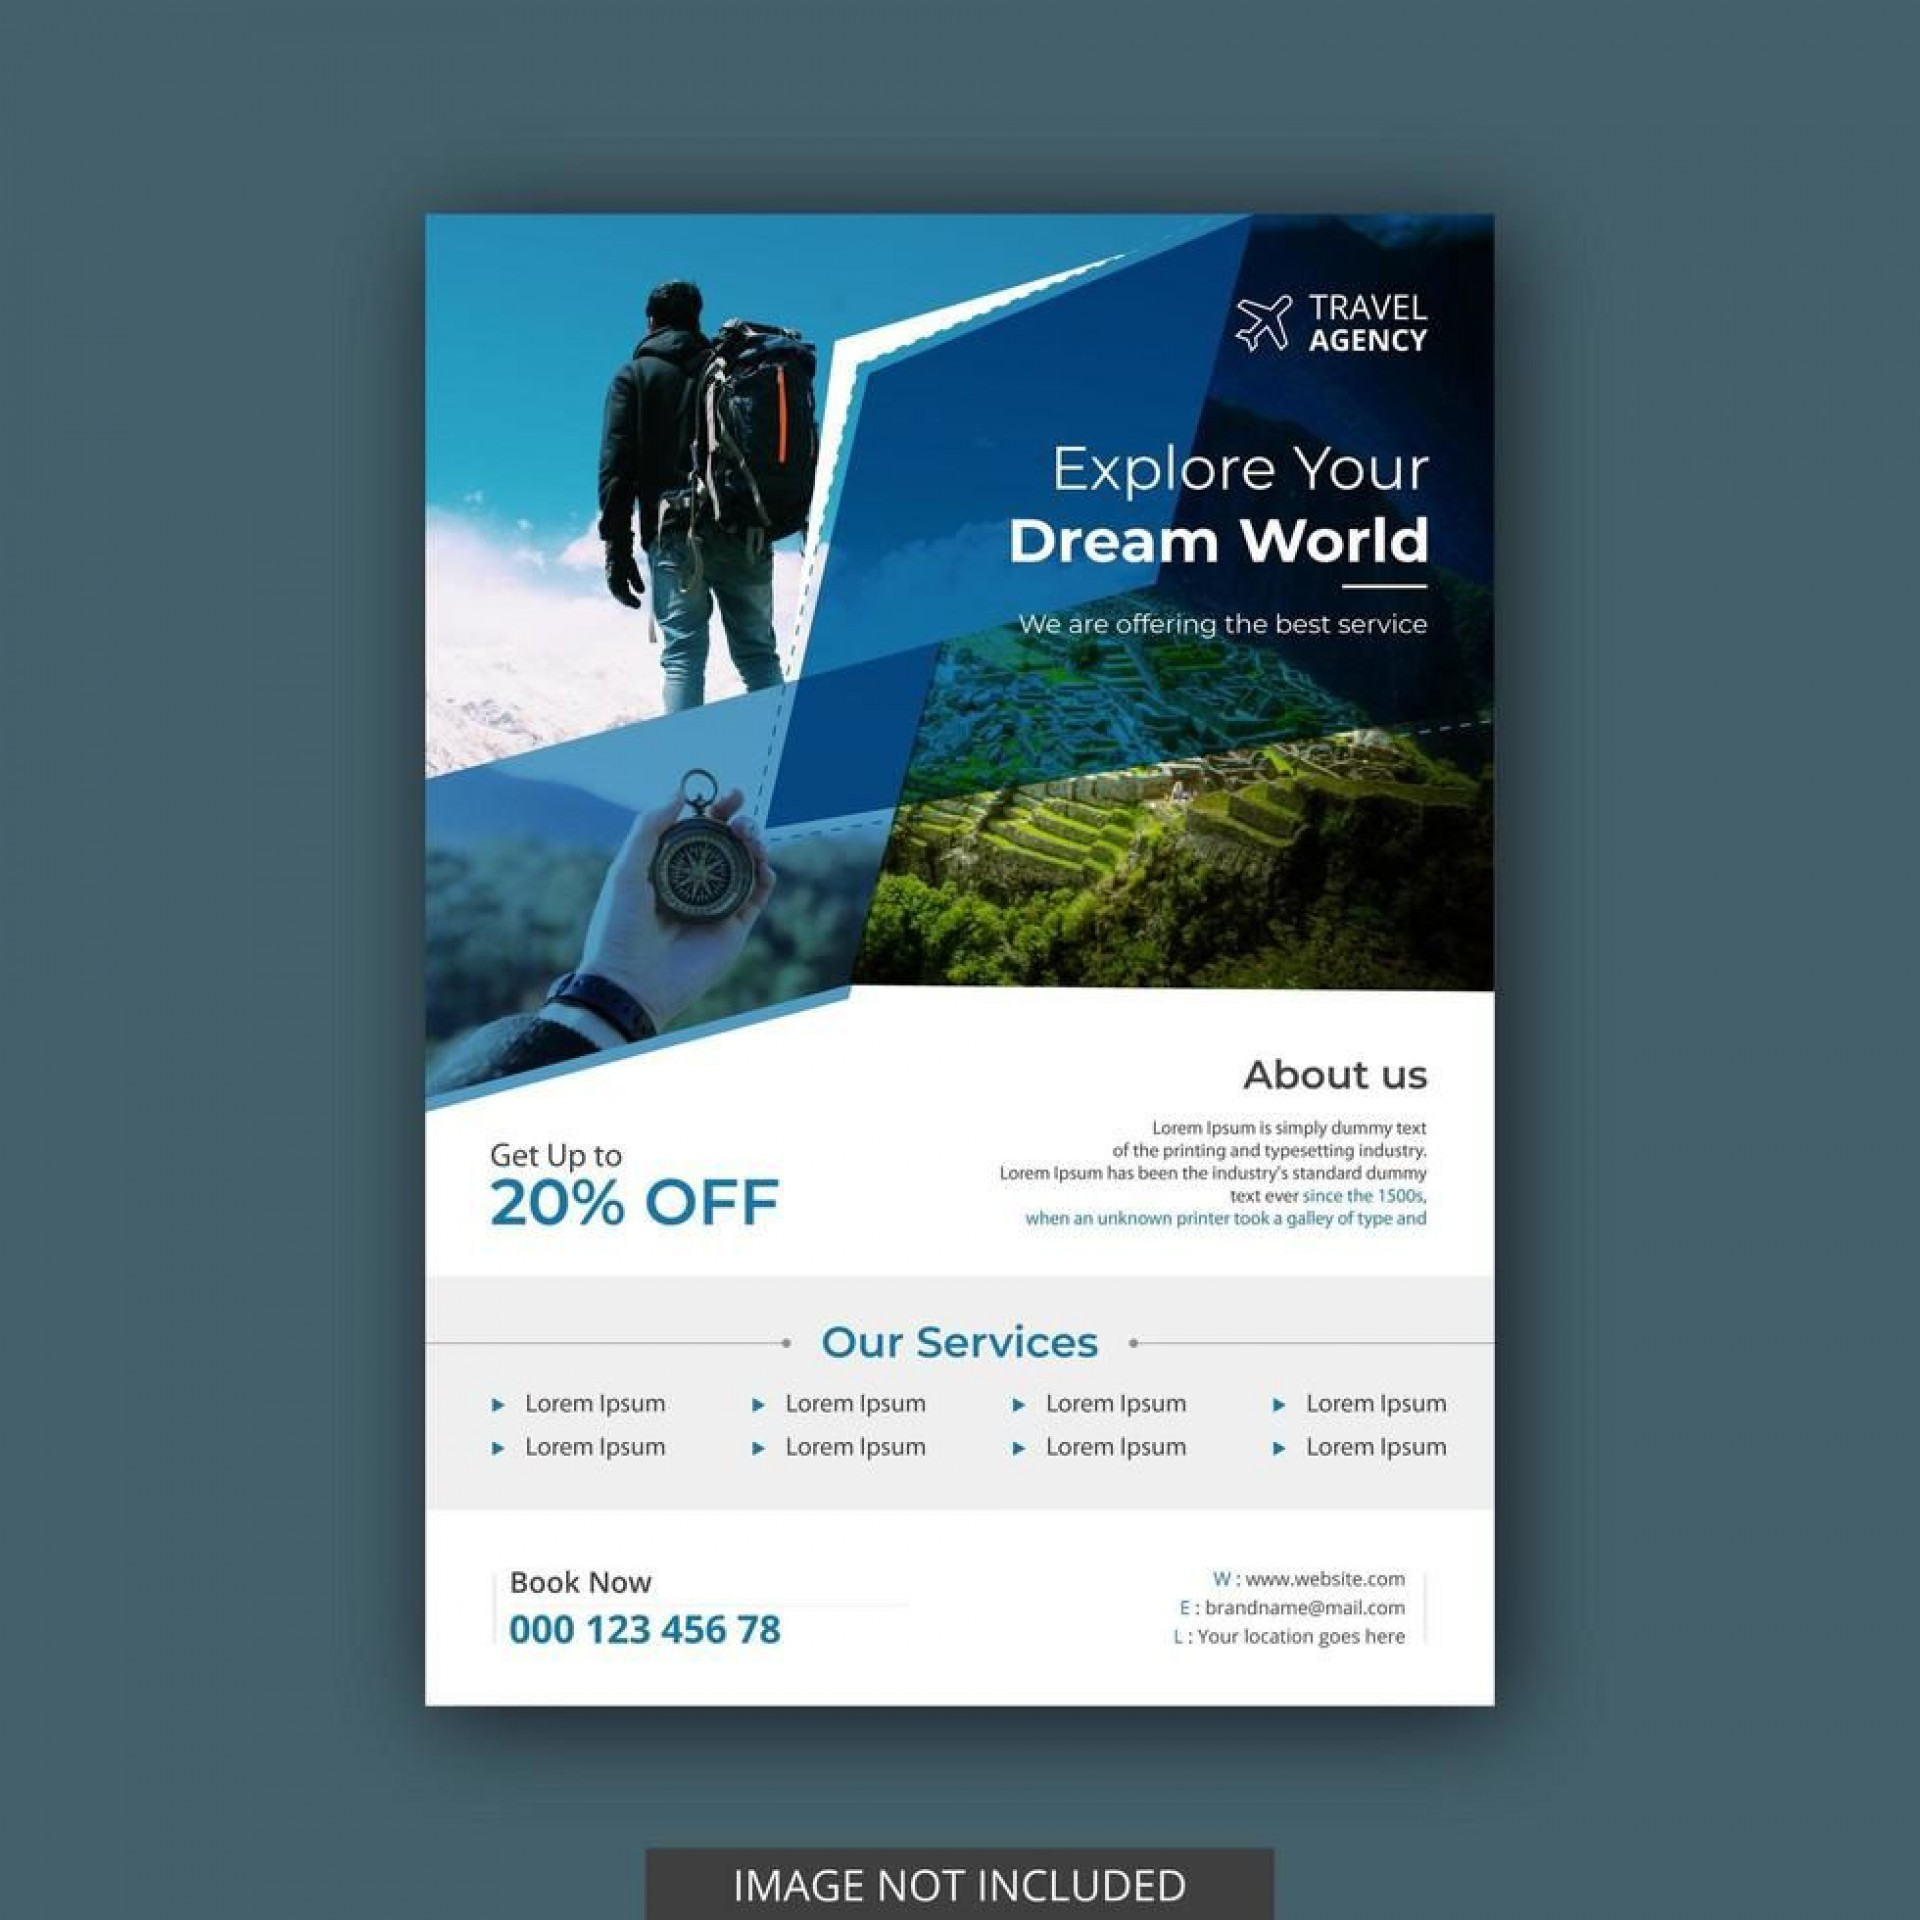 004 Staggering Free Travel Flyer Template Download High Definition 1920